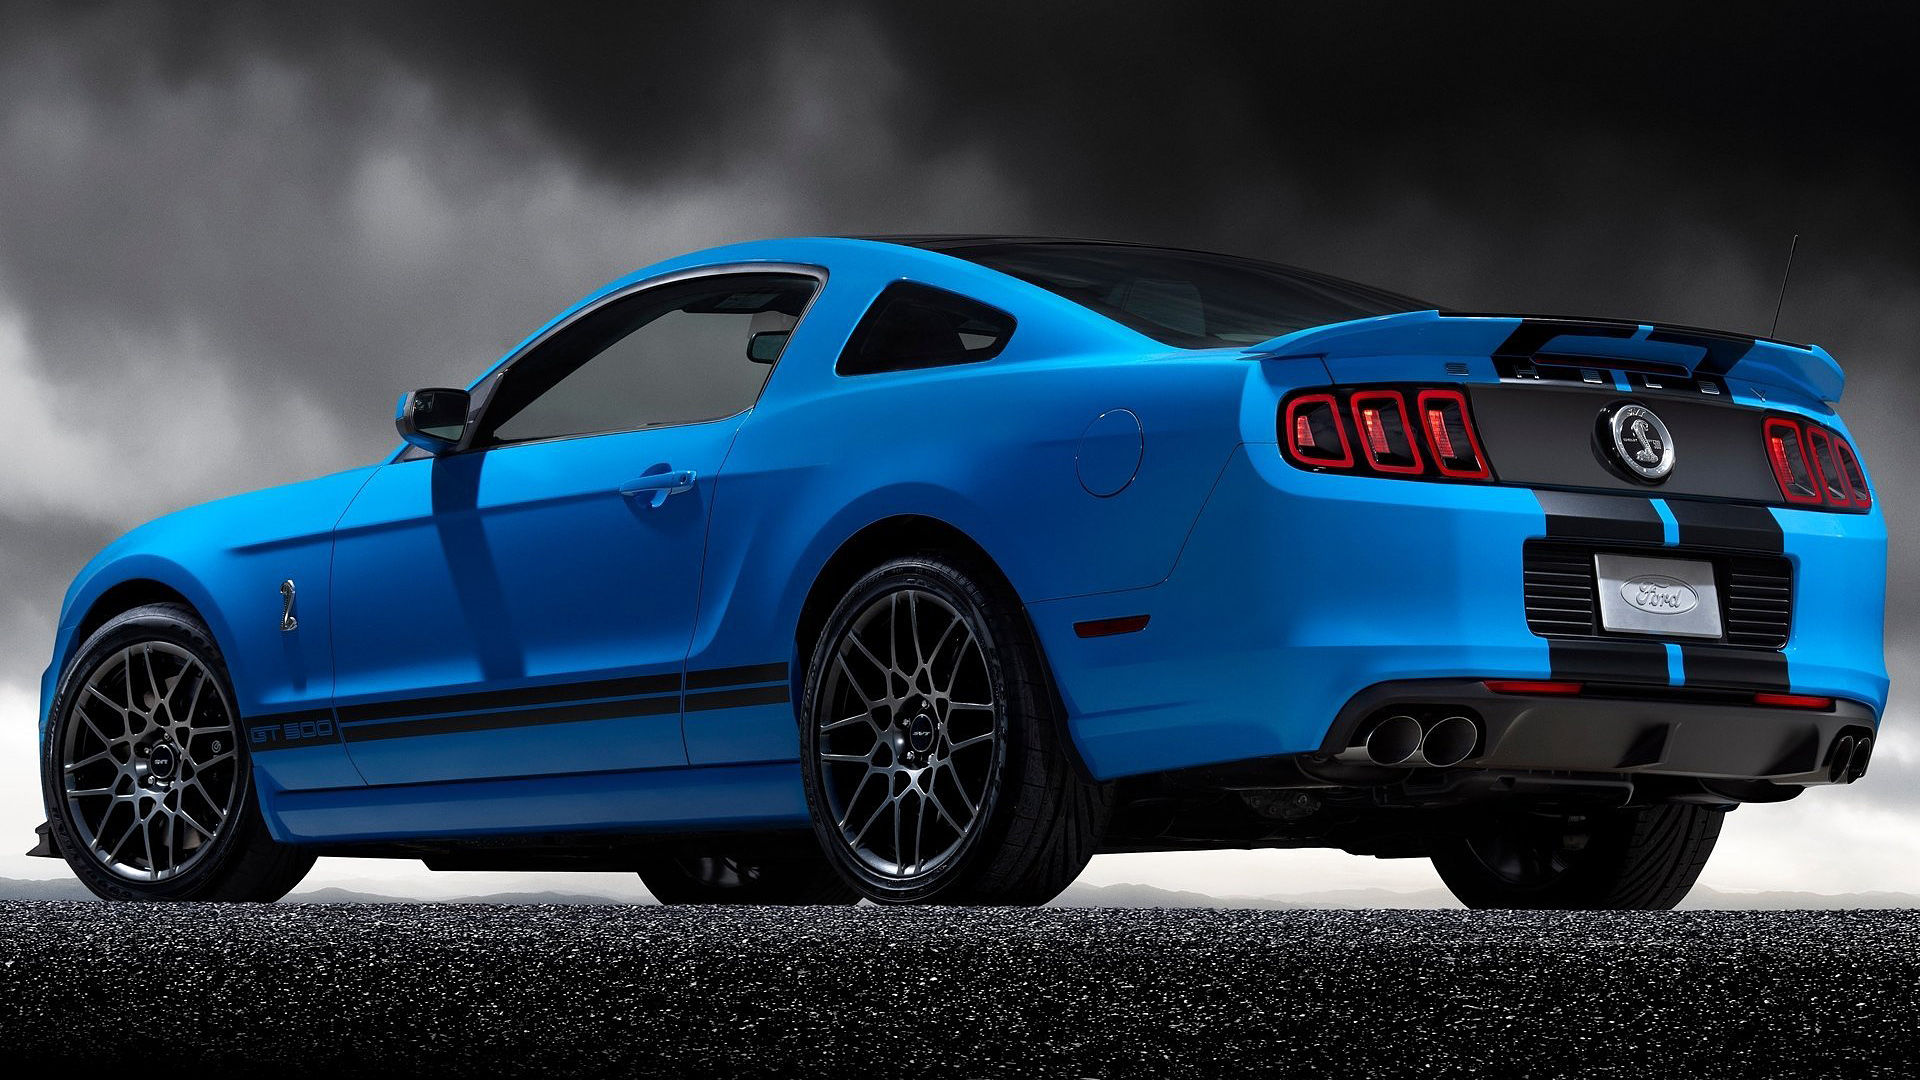 2013 Ford Shelby Mustang GT500